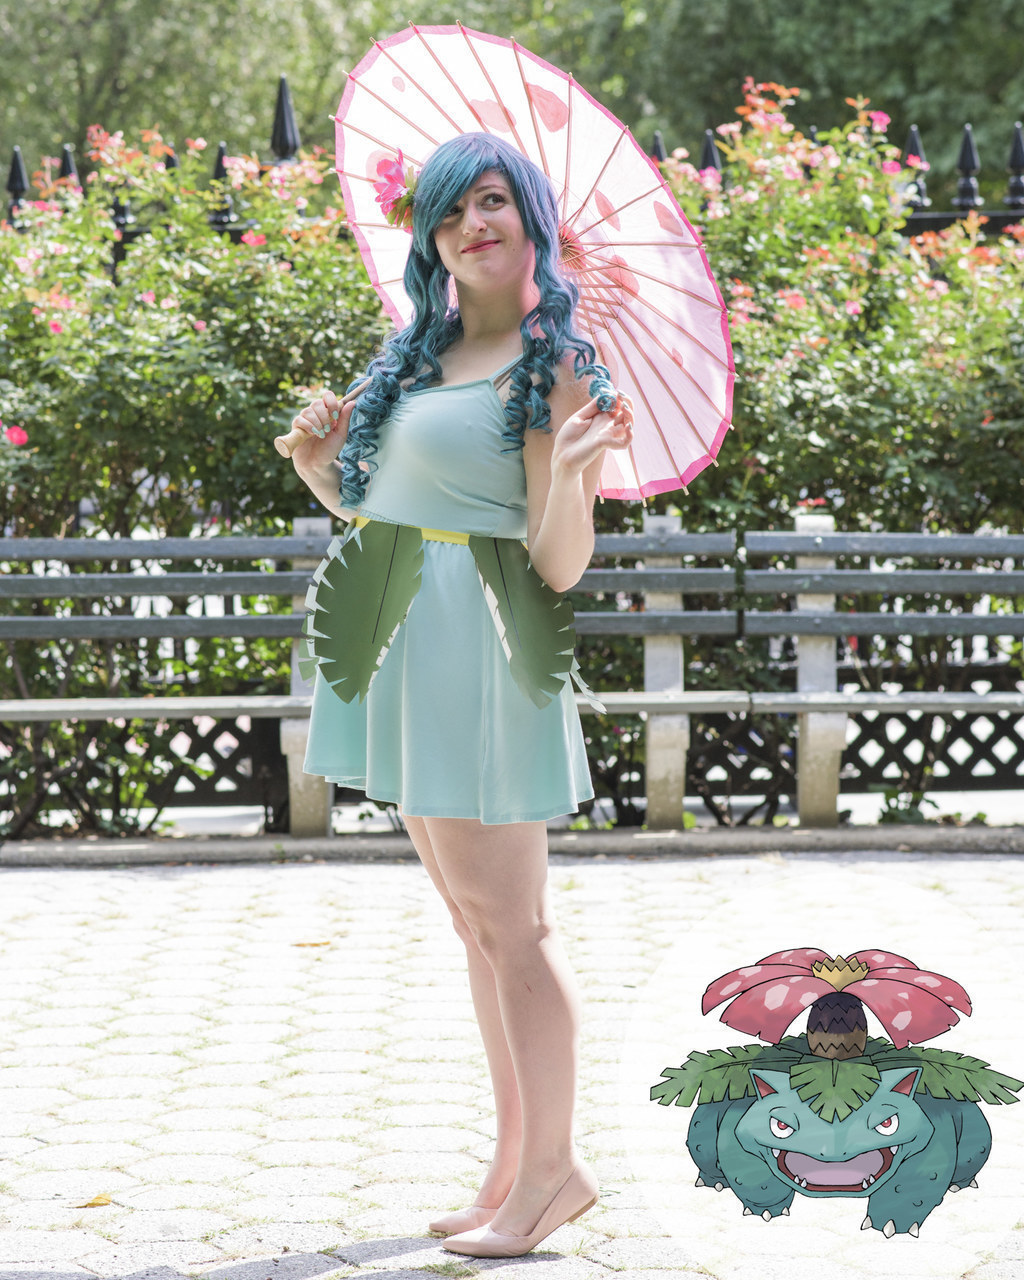 3 Venusaur the Seed Pokémon  sc 1 st  BuzzFeed & 15 Ridiculously Easy Pokemon Halloween Costumes You Can Make For $30